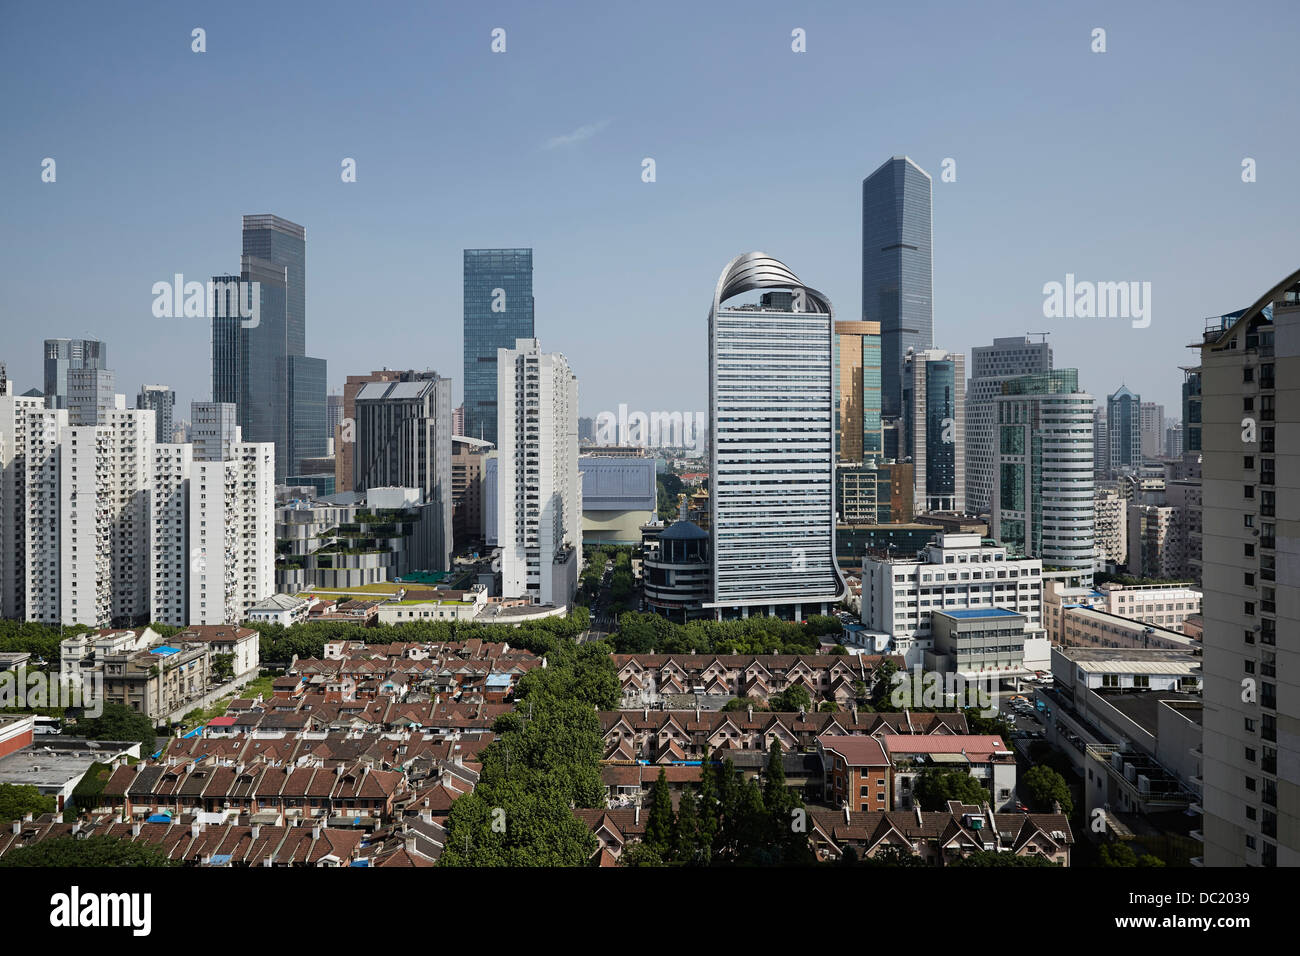 High angle view of Shanghai city, China - Stock Image